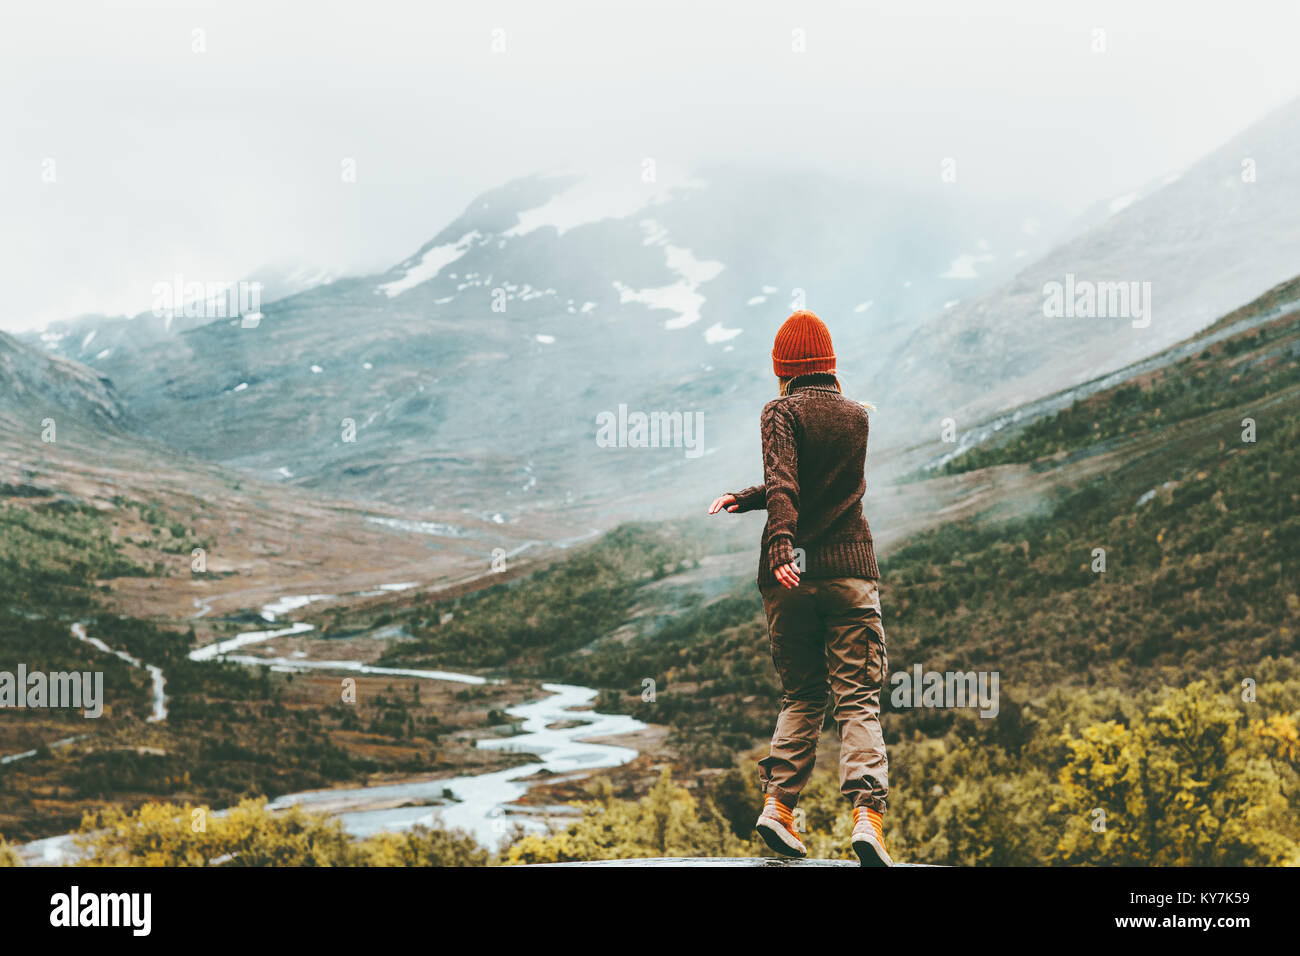 Woman walking outdoor foggy mountains on background Travel Lifestyle getaway concept adventure active vacations - Stock Image